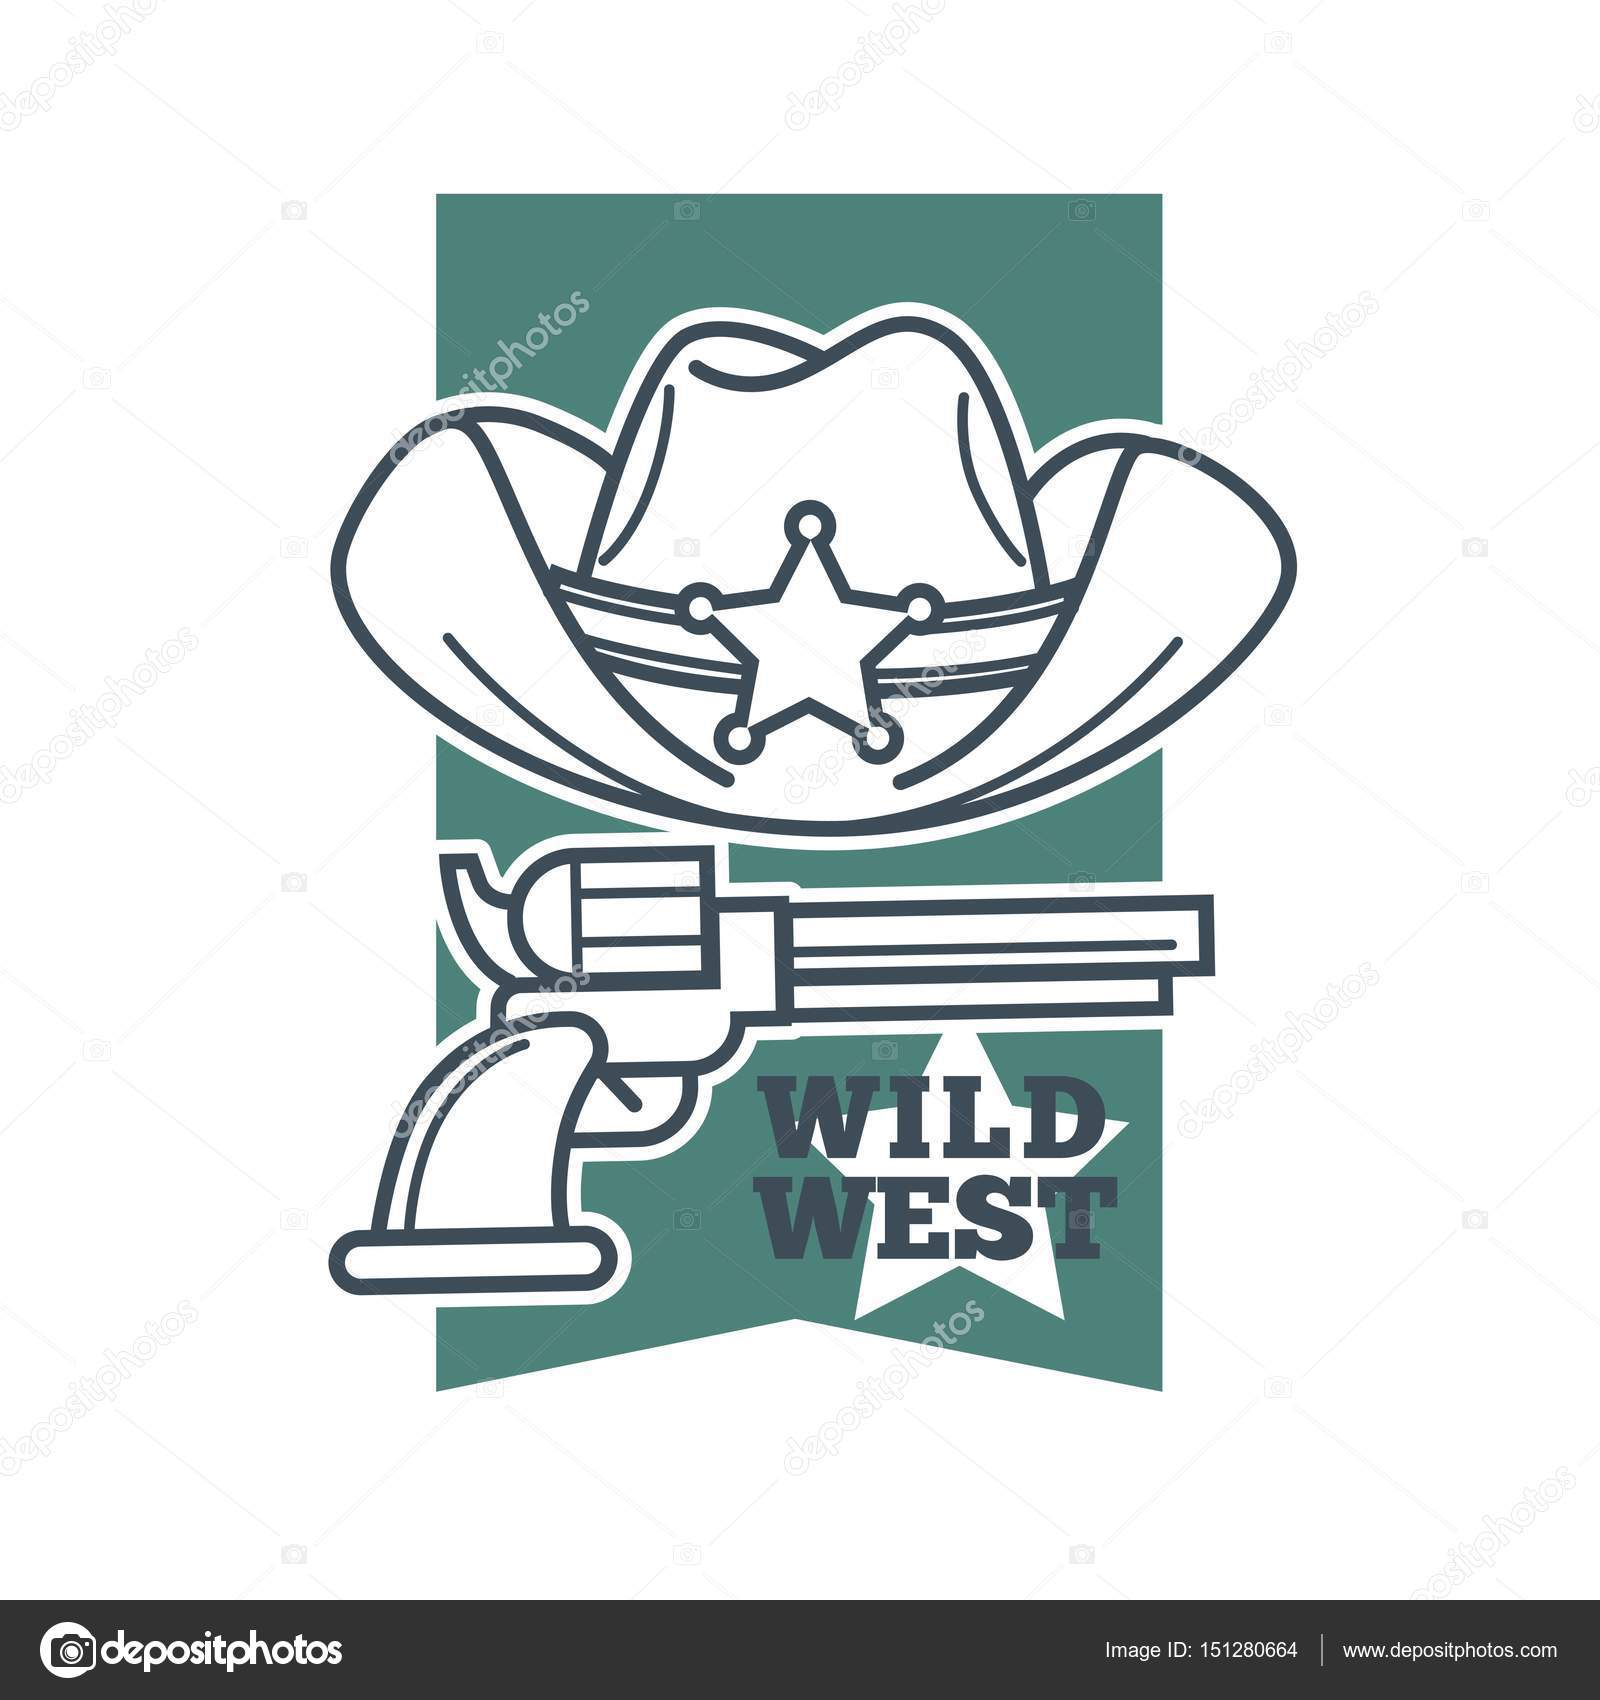 Hat and revolver with wild west words stock vector sonulkaster vector illustration of hat with sheriff star and a revolver gun with wild west text symbol vector by sonulkaster biocorpaavc